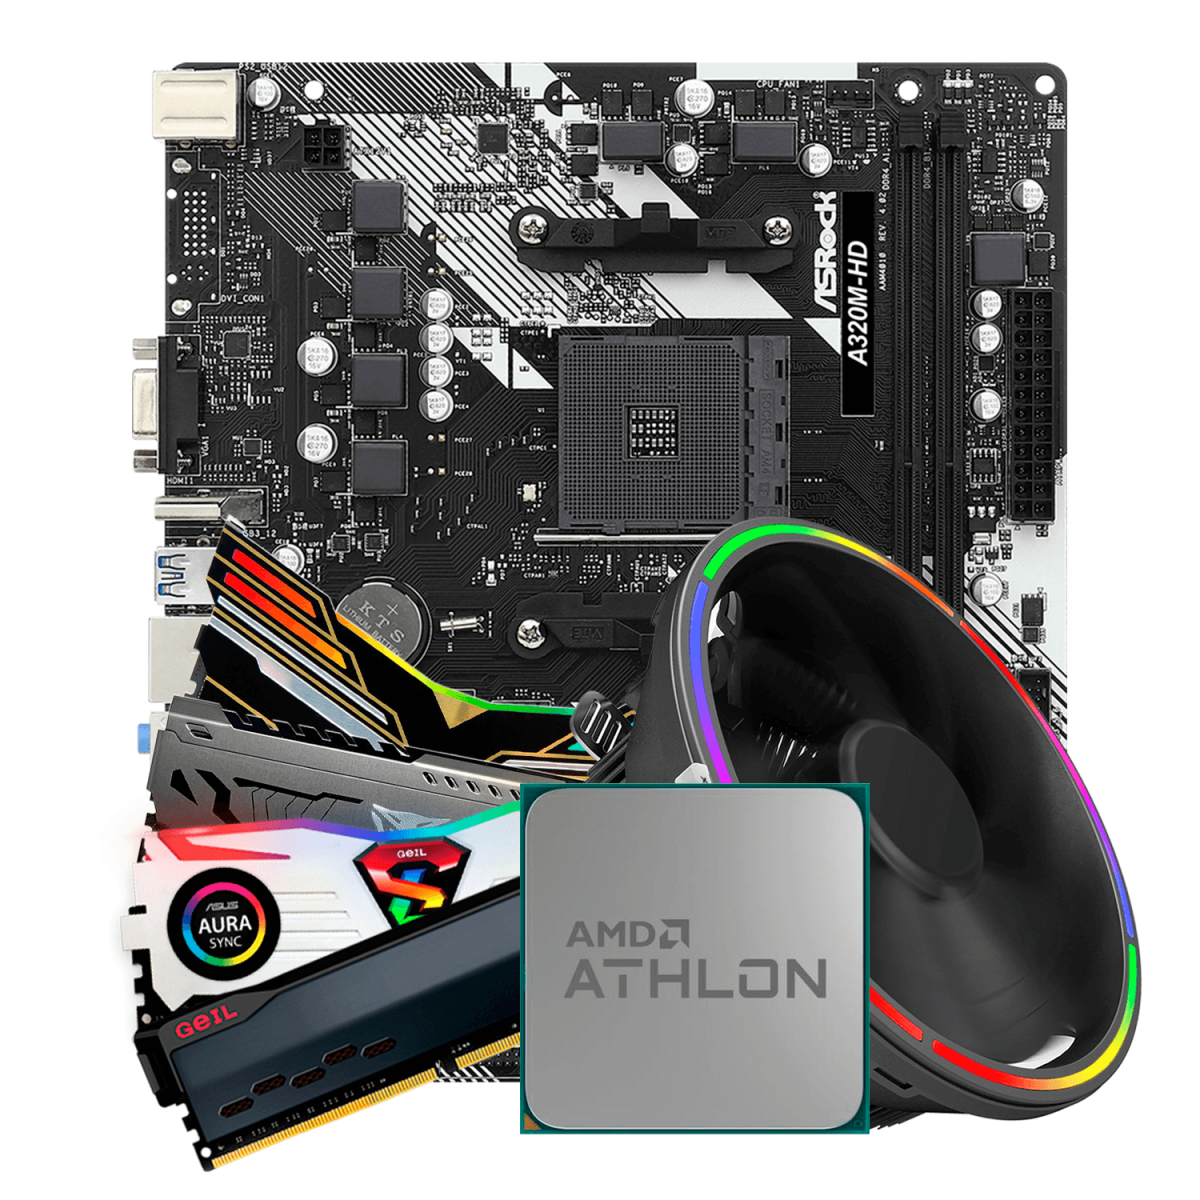 Kit Upgrade, AMD Athlon 200GE, ASRock A320M-HD R4.0, Memória DDR4 16GB (2x8GB) 3000MHz